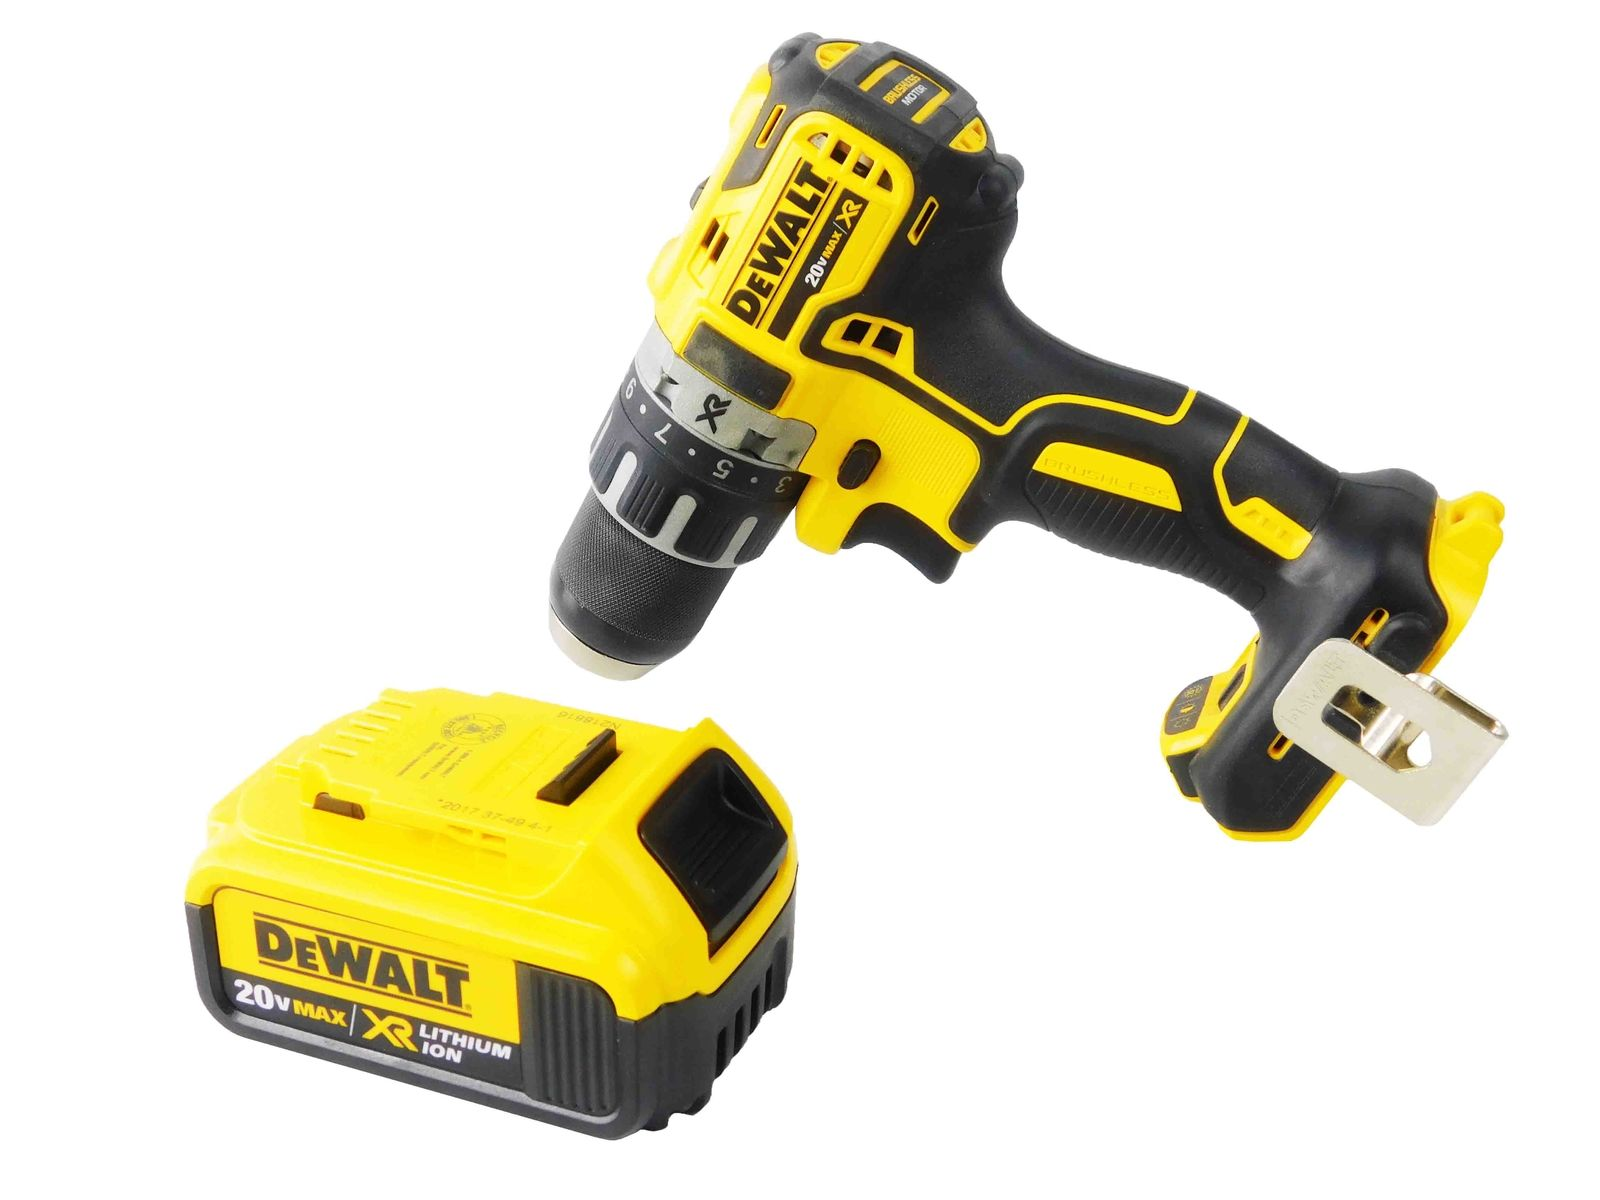 Dewalt-DCD791B-20V-1-2-Brushless-Drill-4Ah-DCB204-Lithium-Ion-Battery-image-1